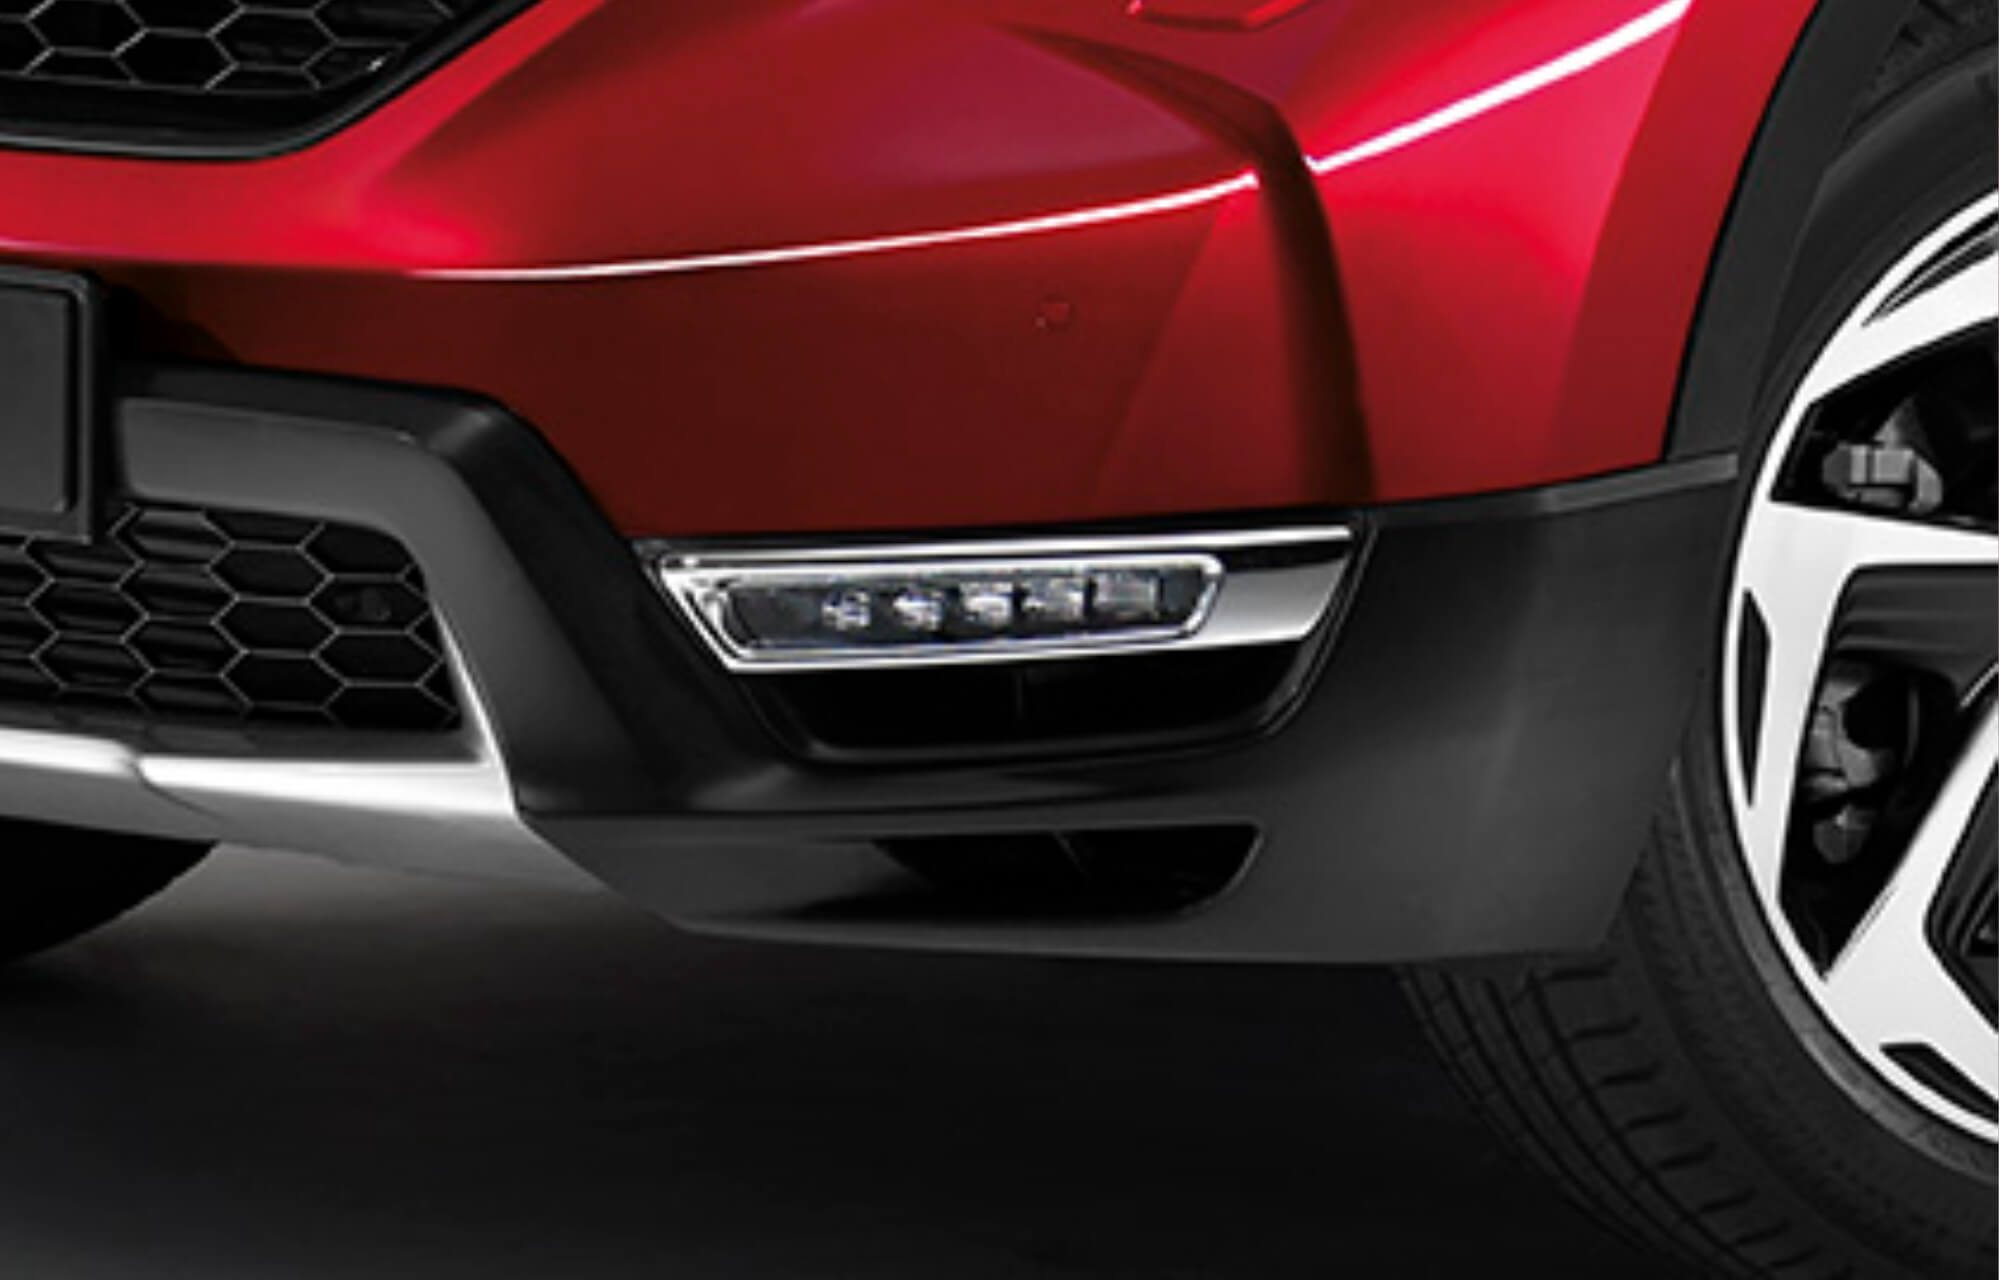 CR-V Front Fog Lights